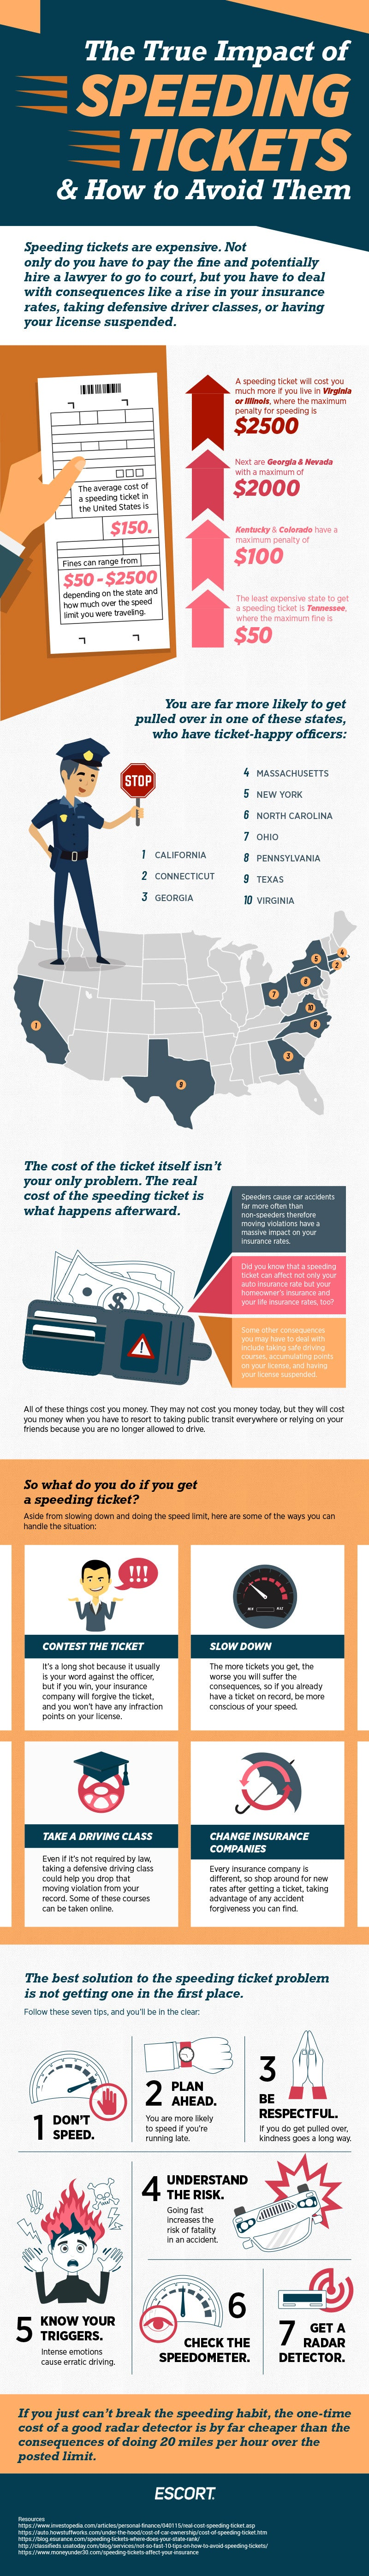 impact of speeding tickets infographic